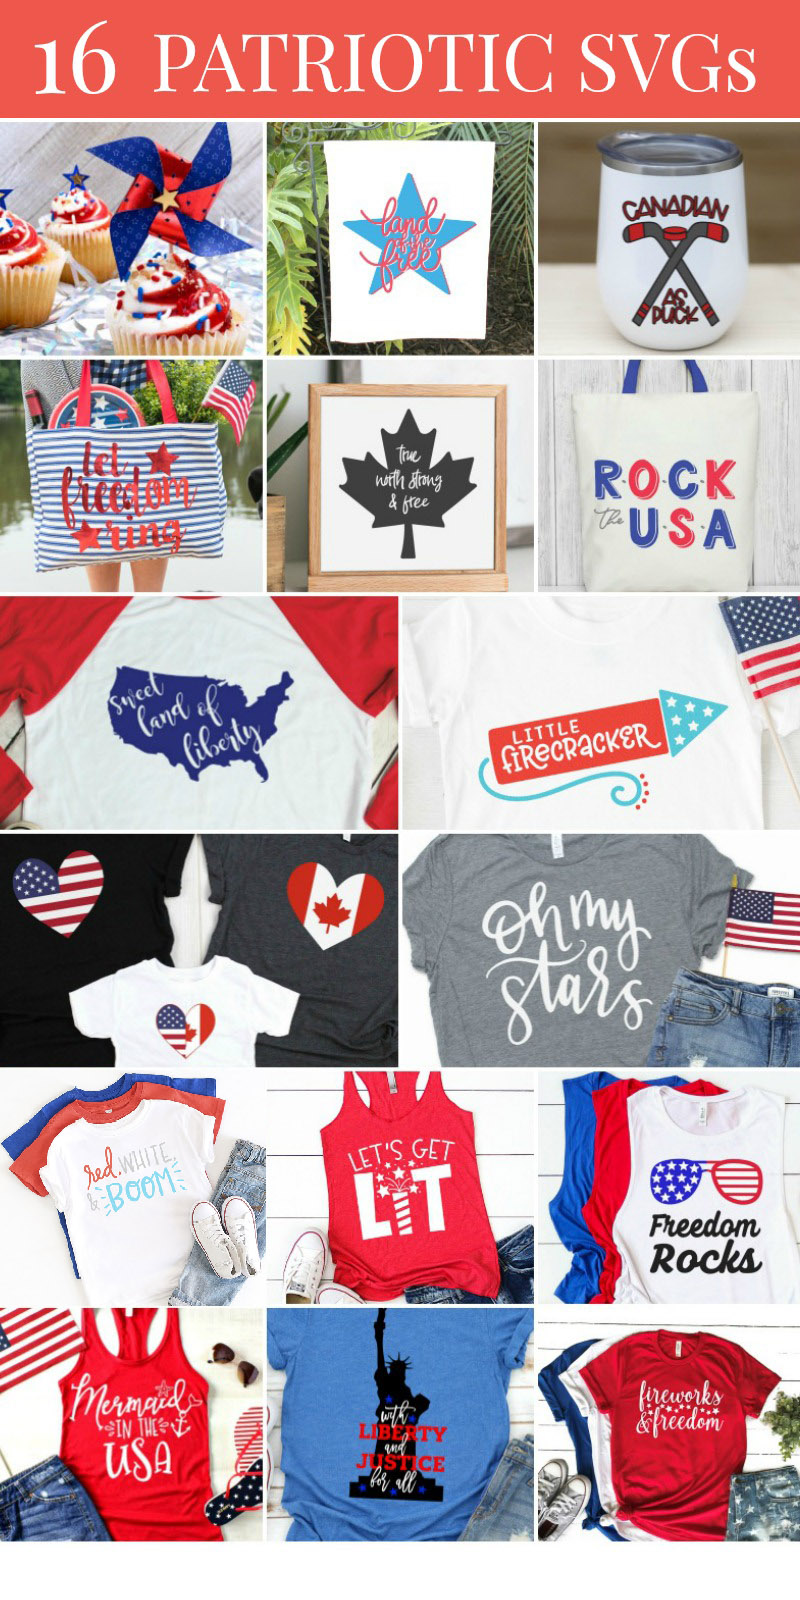 A collection of 15 free Patriotic SVG files for every kind of craft you can image for a patriotic summer!